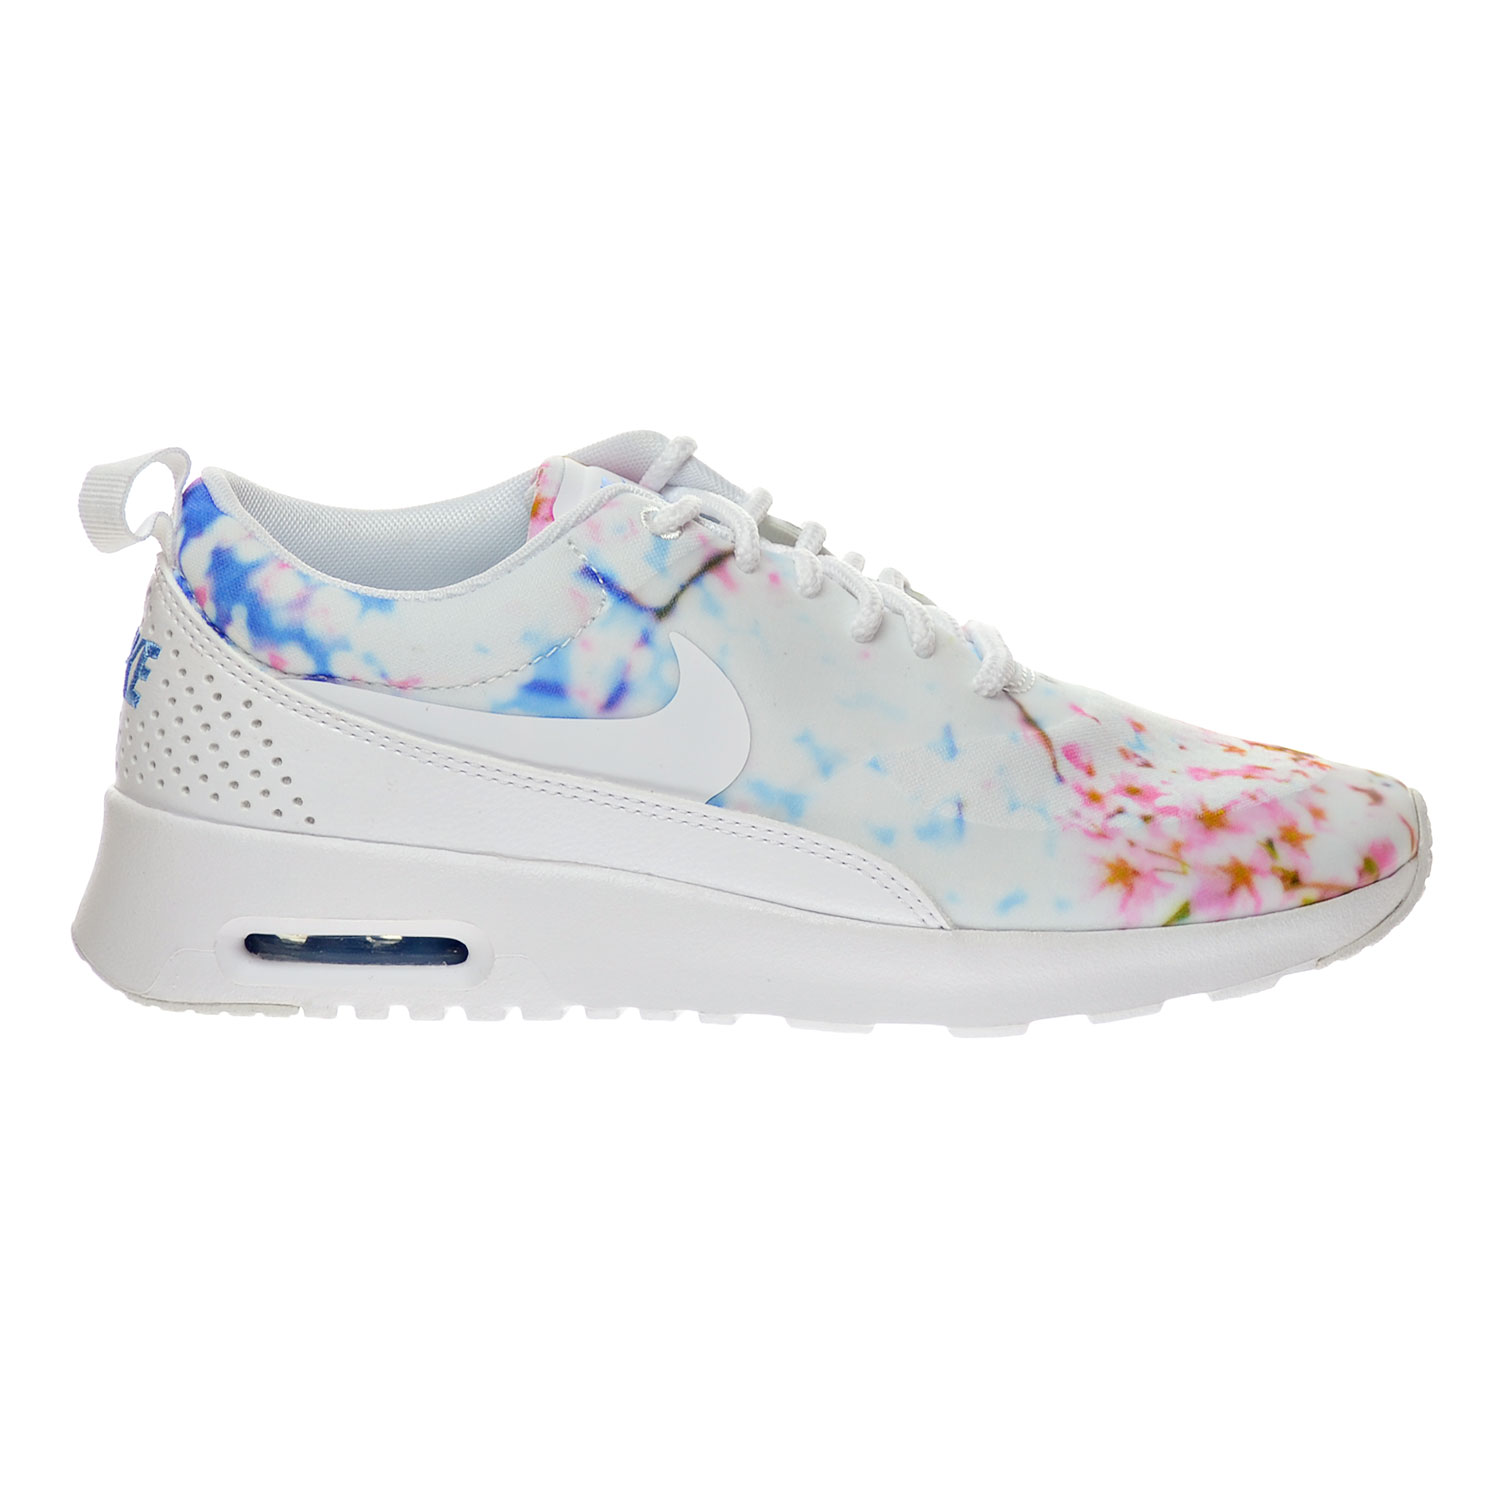 nike air max cherry blossom uk salomon veste ski femme. Black Bedroom Furniture Sets. Home Design Ideas